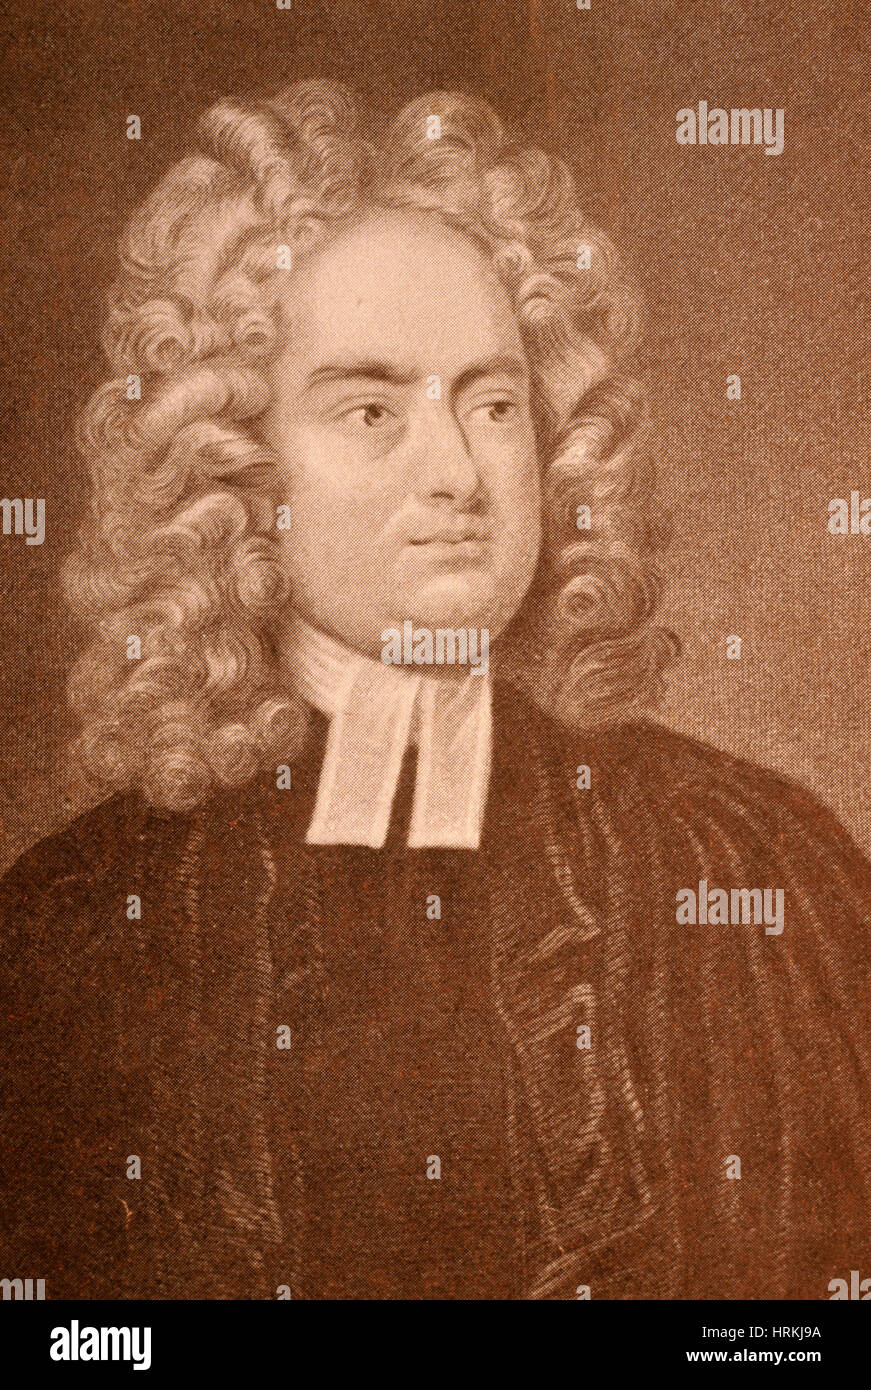 Jonathan Swift, Irish Author - Stock Image